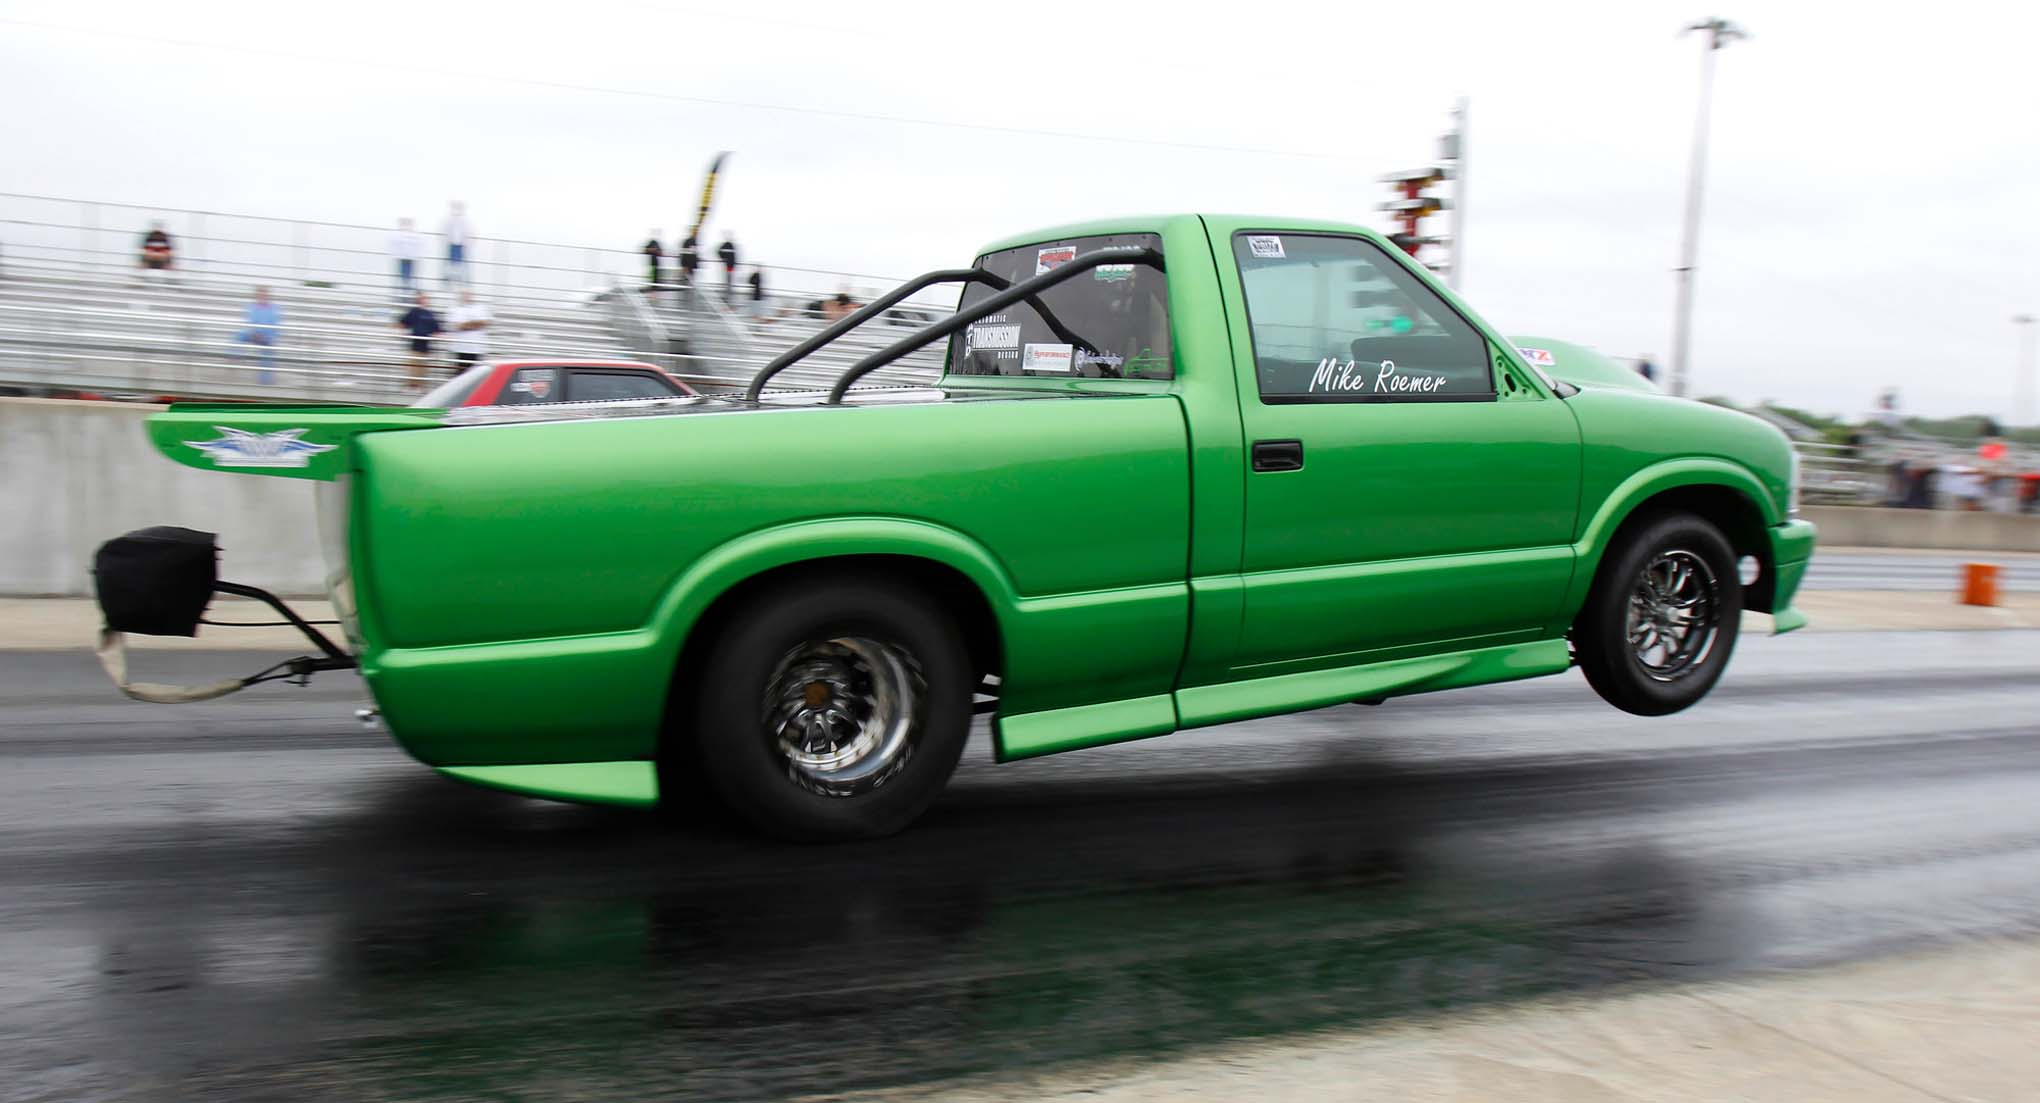 Michael Roemer, a 22-year-old, carries the wheels of his 1994 S10 at Prize Fight 2 at Ohio Valley Raceway. The Flying Pickle is knocking on the 4s in the Ultra Street Class.